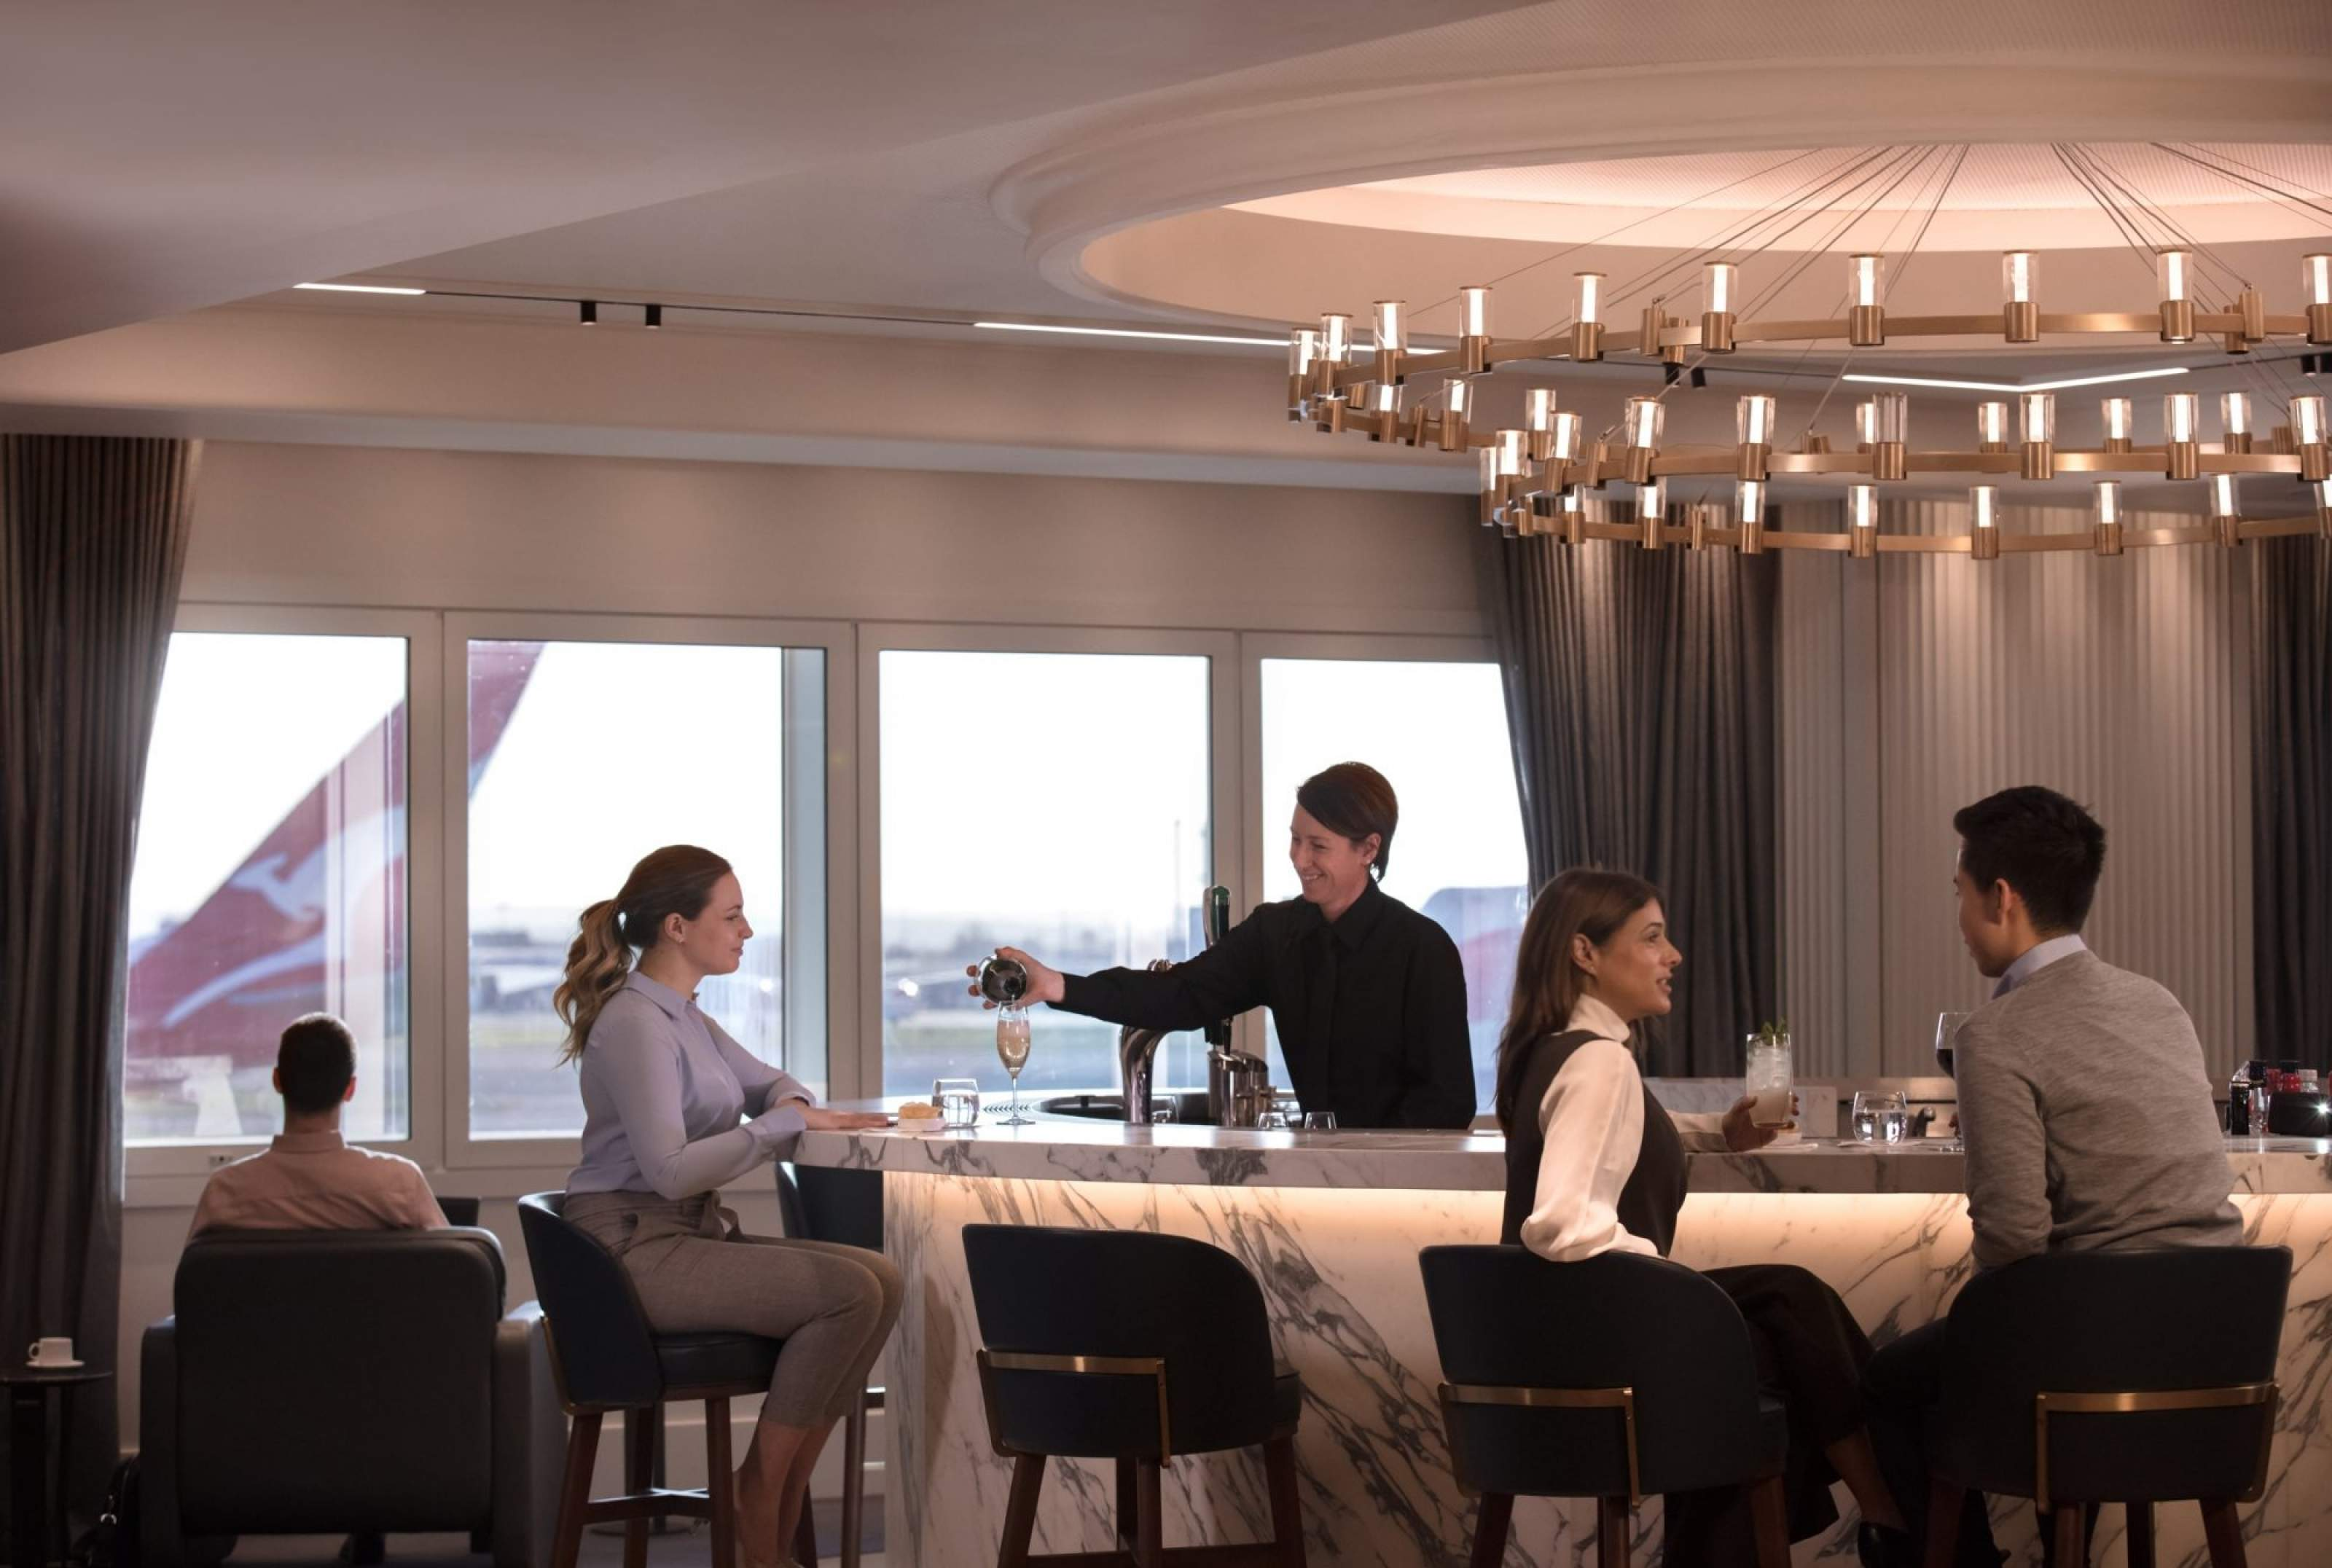 QF London Lounge (Qantas)